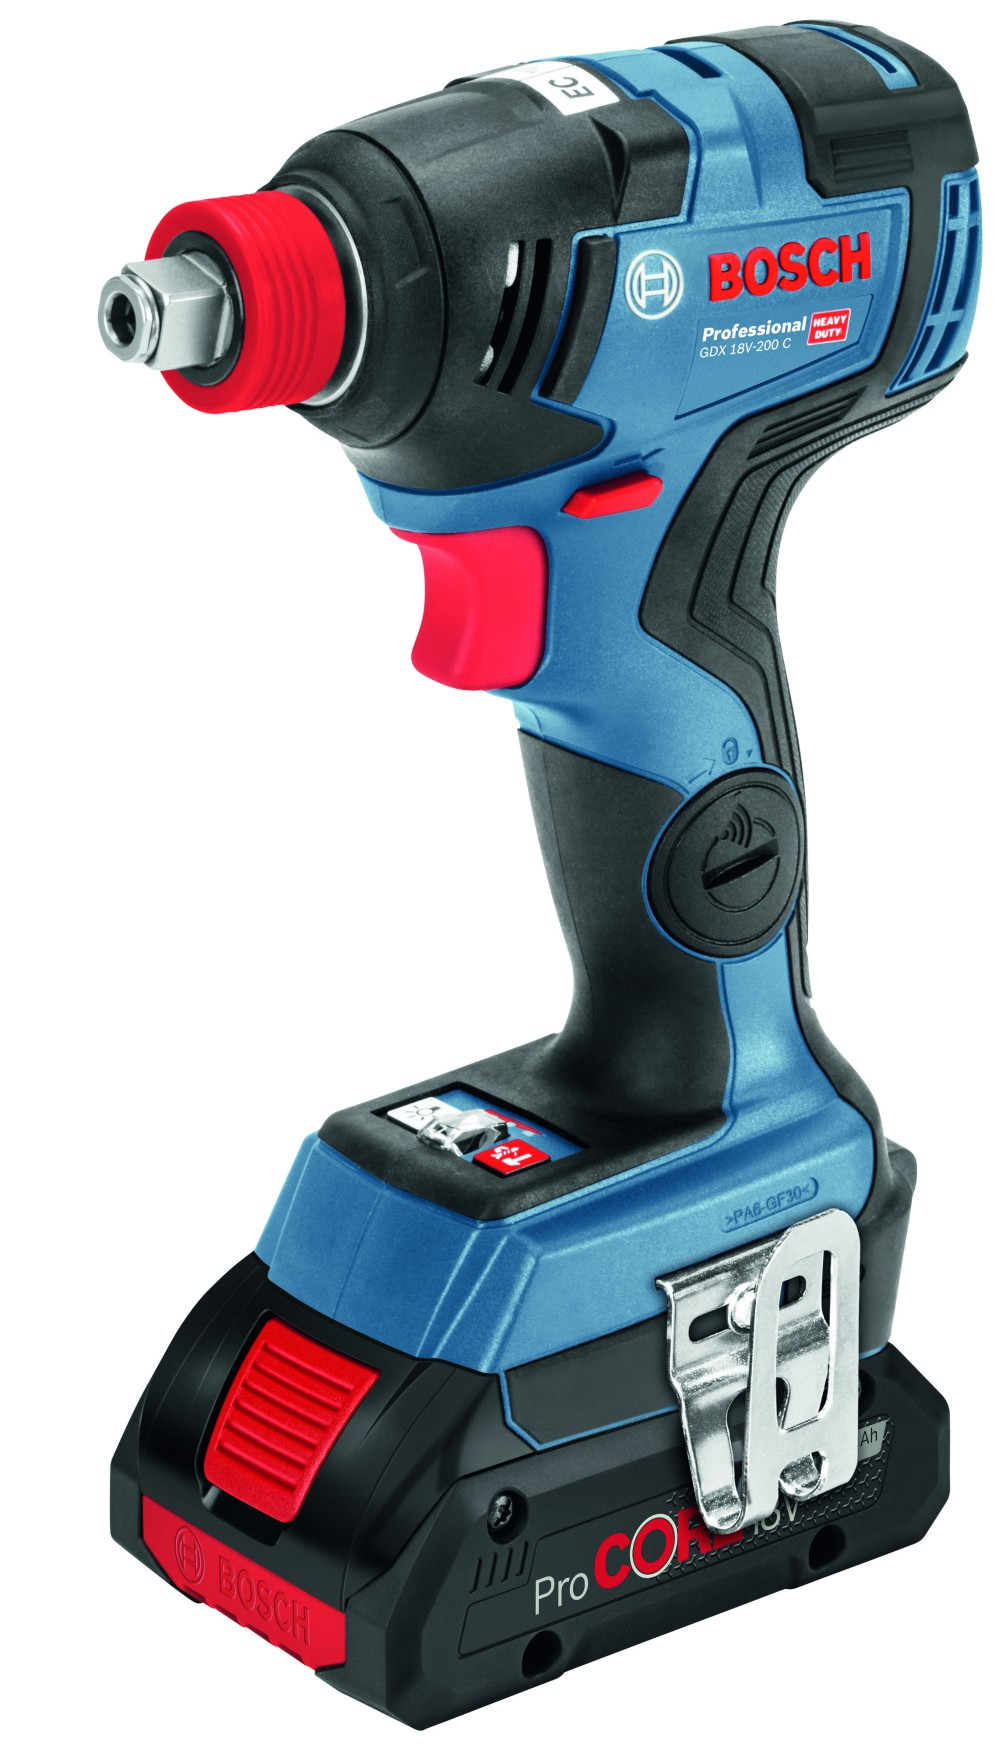 New cordless impact drivers from Bosch